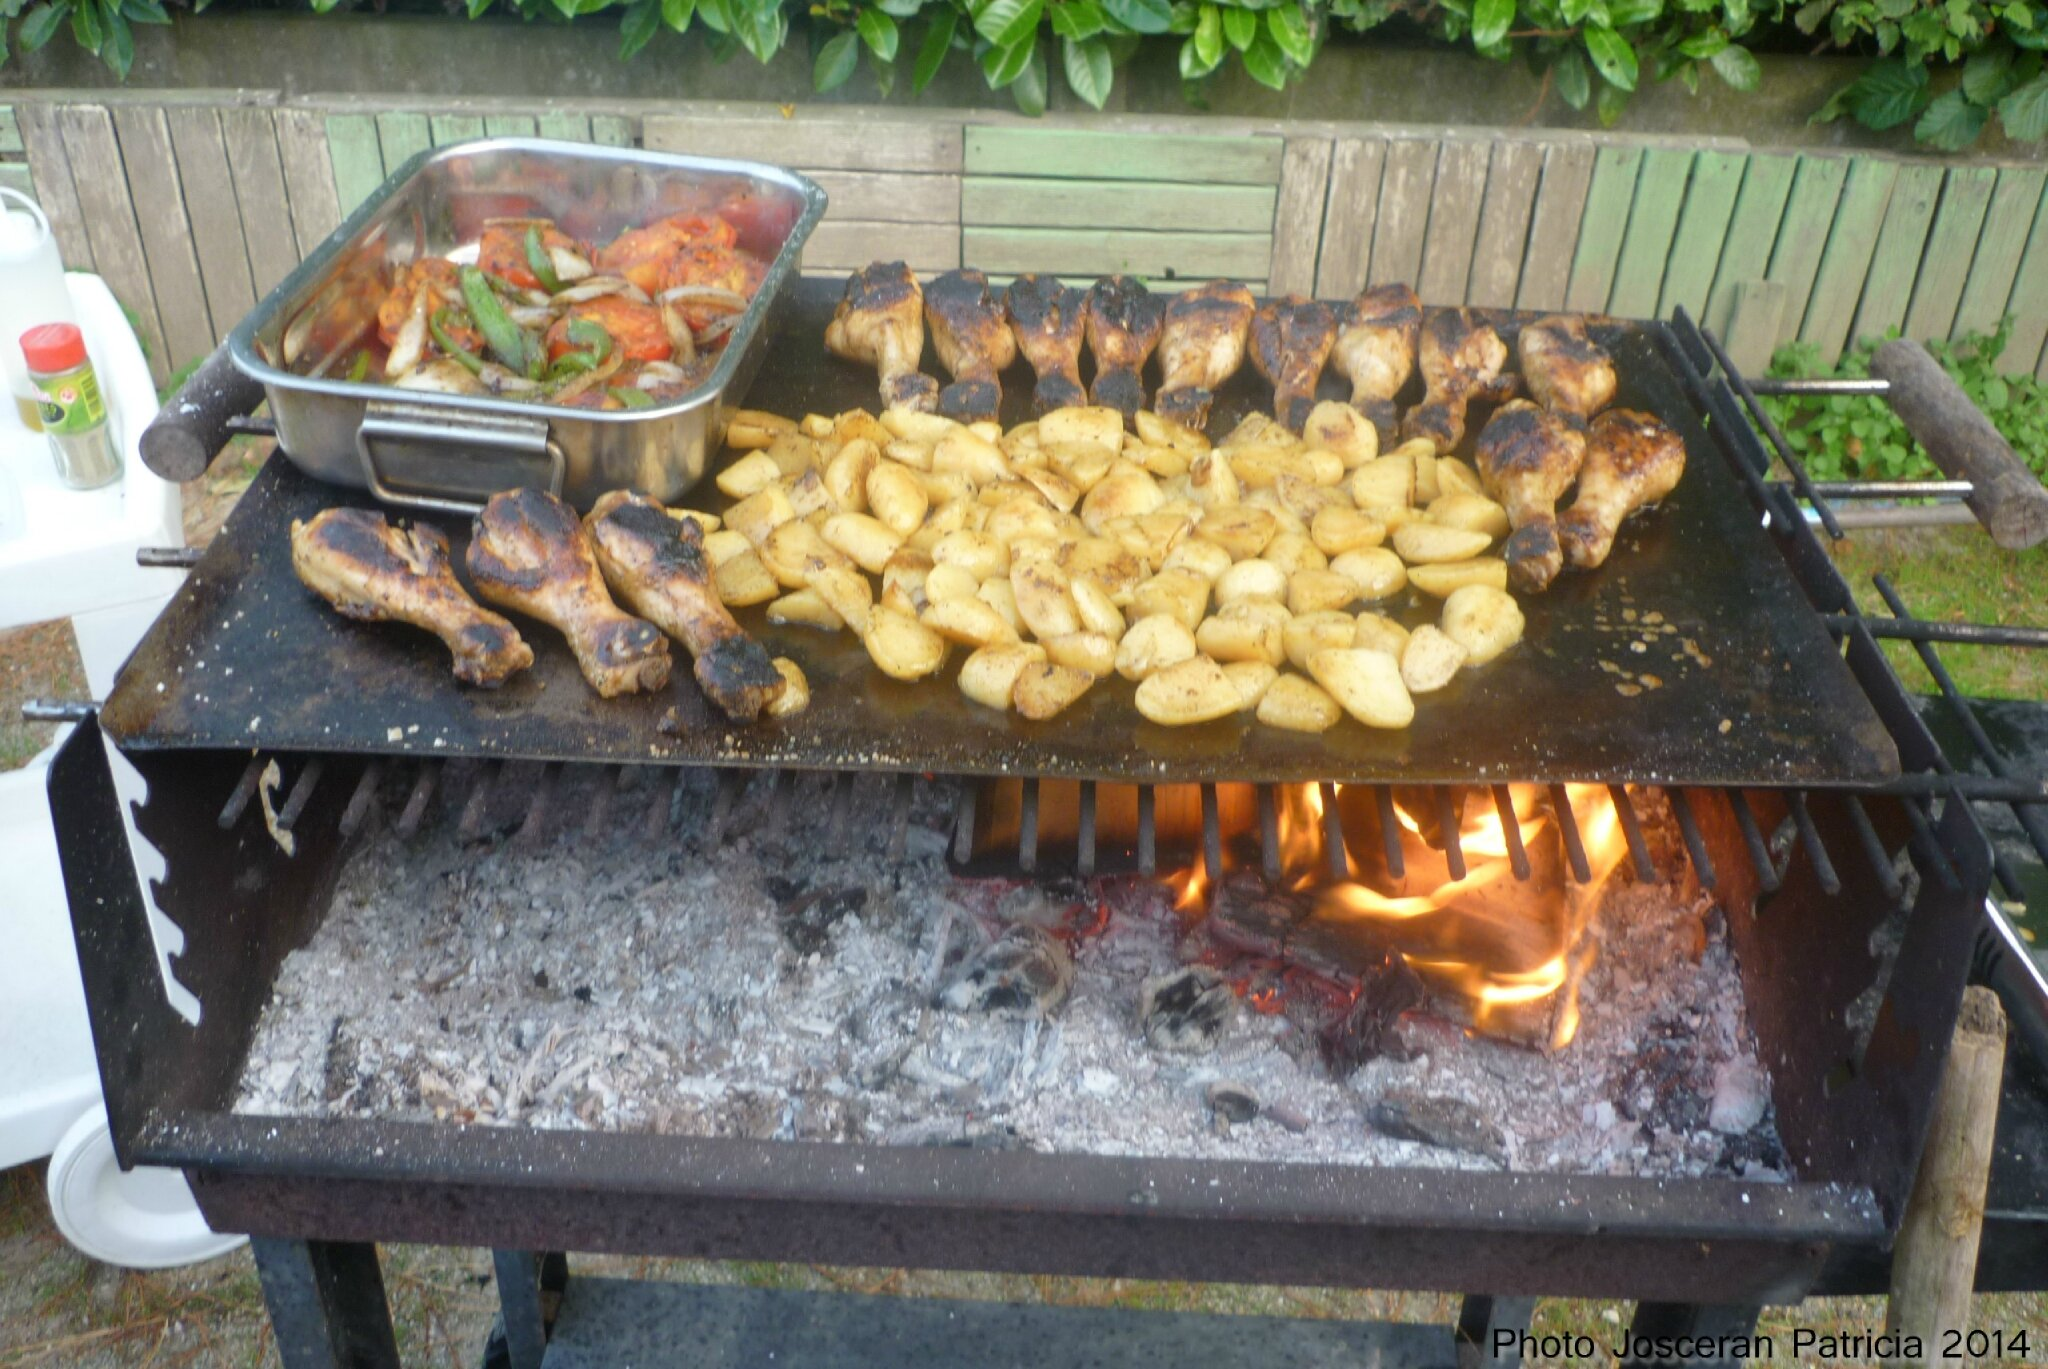 Idee Repas Barbecue.Idee Repas Barbecue